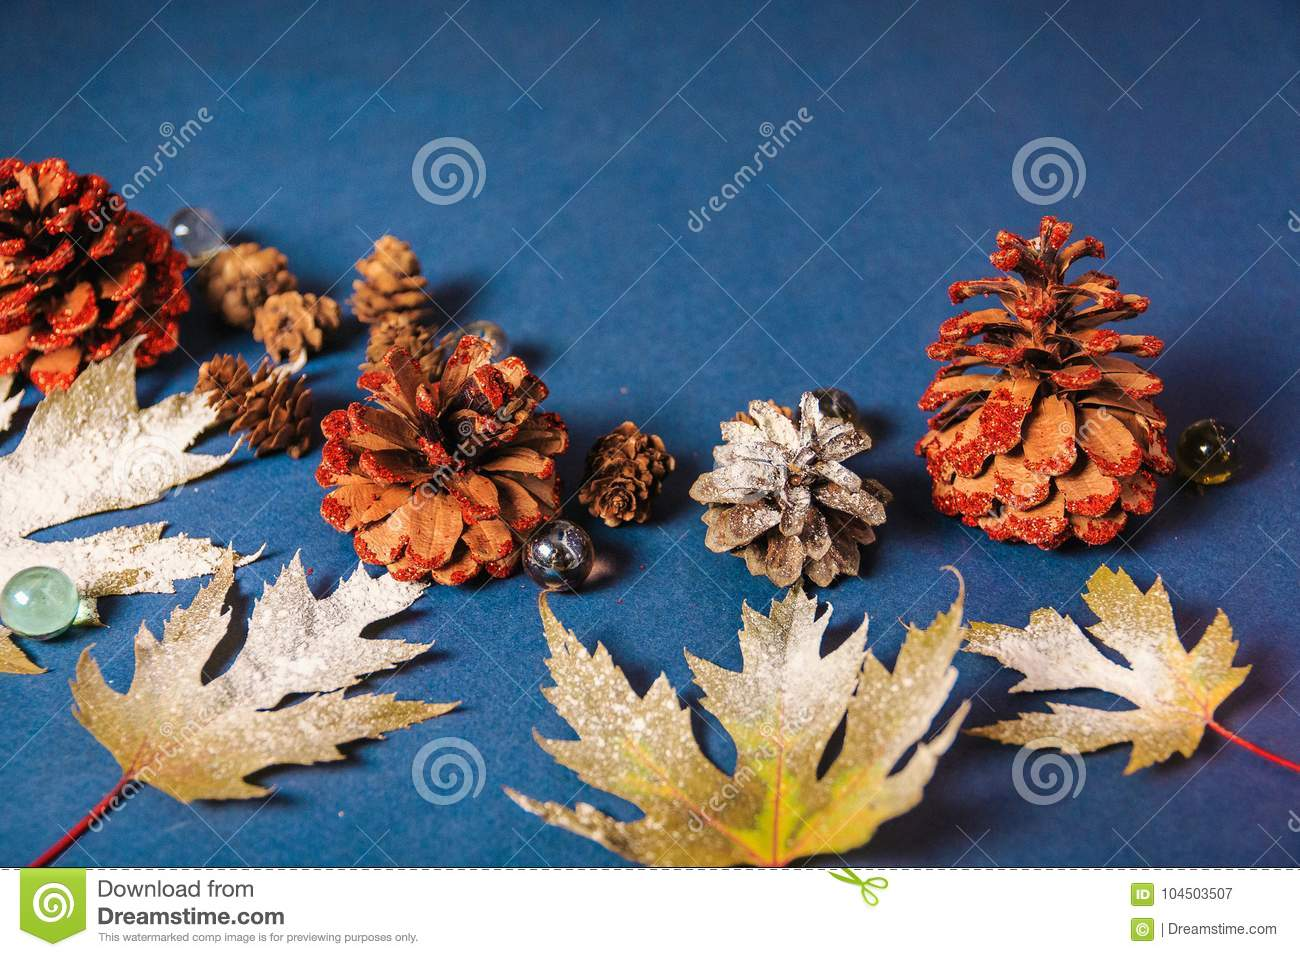 Christmas background shots, leaves on a blue background